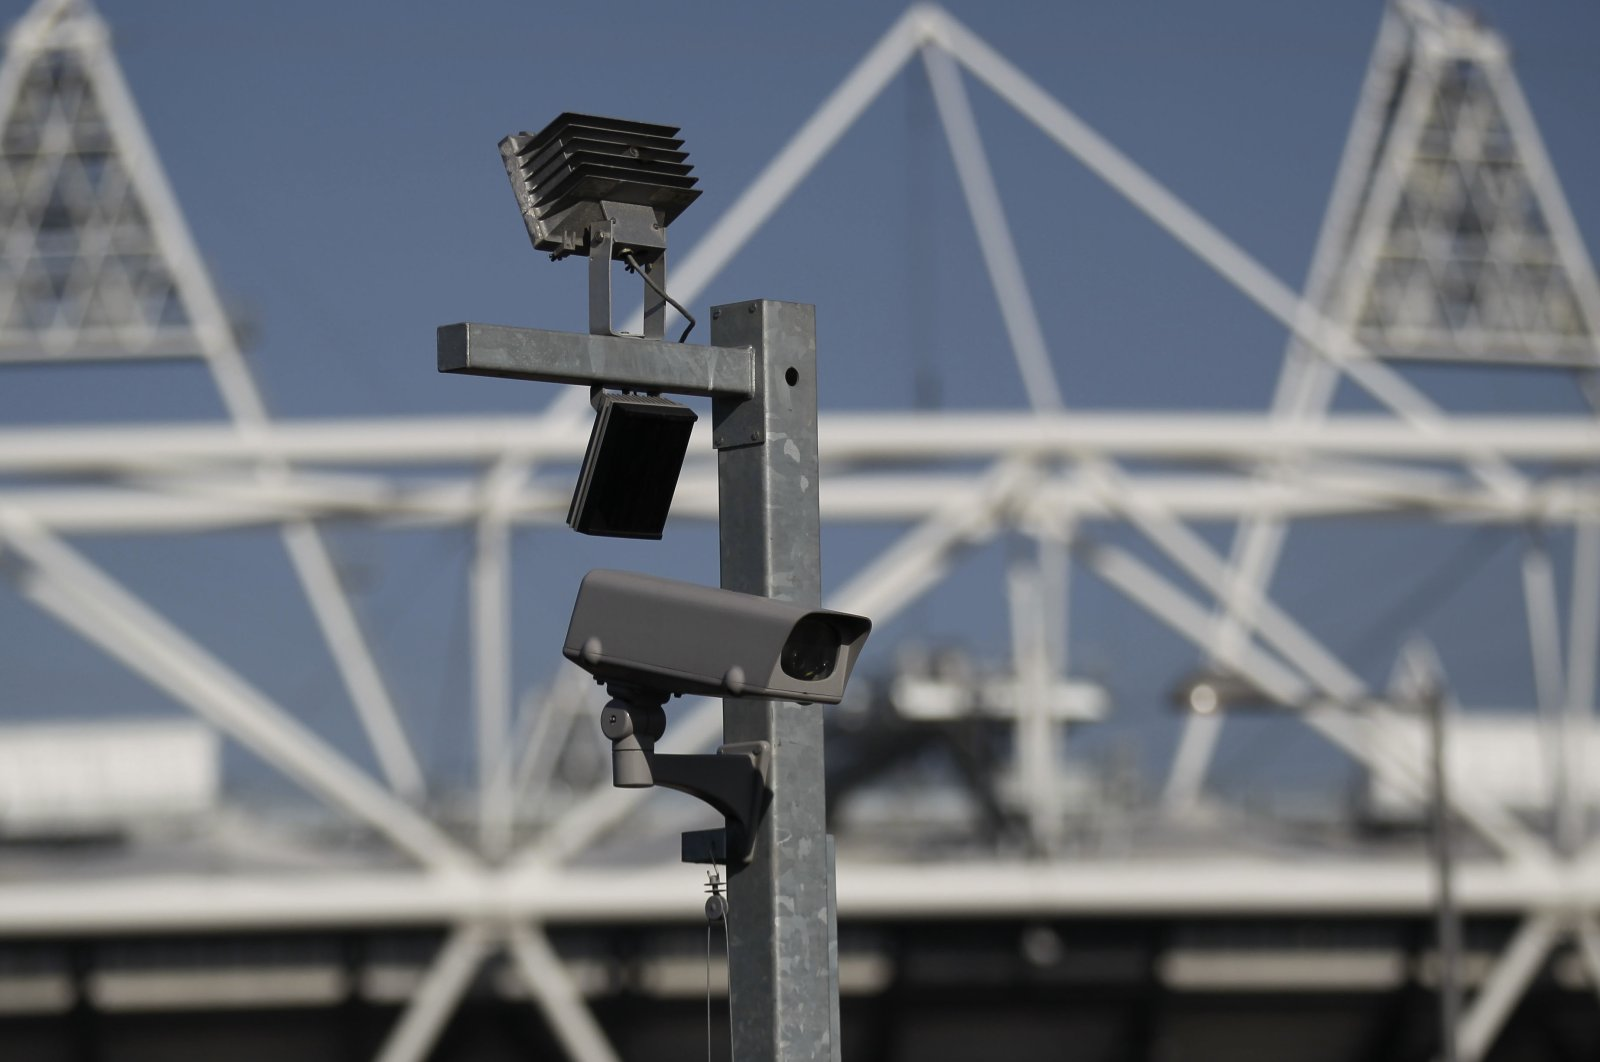 A closed-circuit security camera is seen by the Olympic Stadium at the Olympic Park in London, U.K., March 28, 2012. (AP Photo)